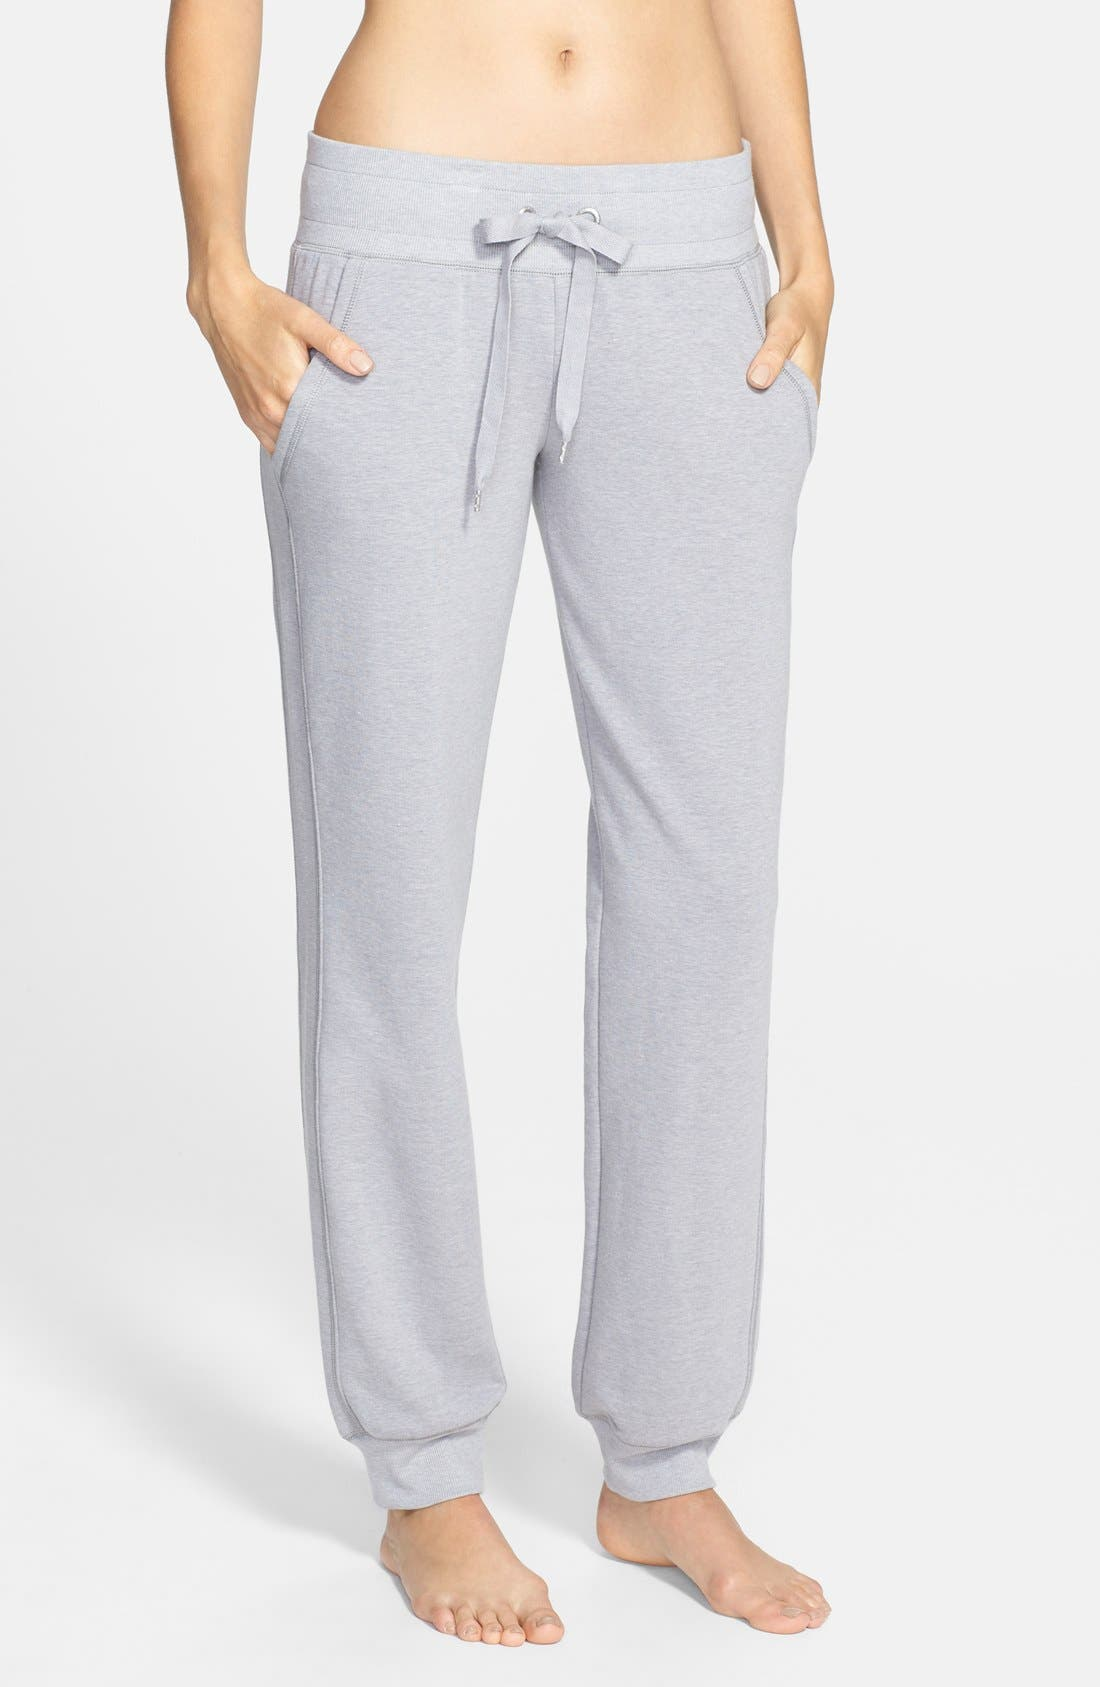 Alternate Image 1 Selected - Zella Low Rise Skinny Fleece Sweatpants (Online Only)